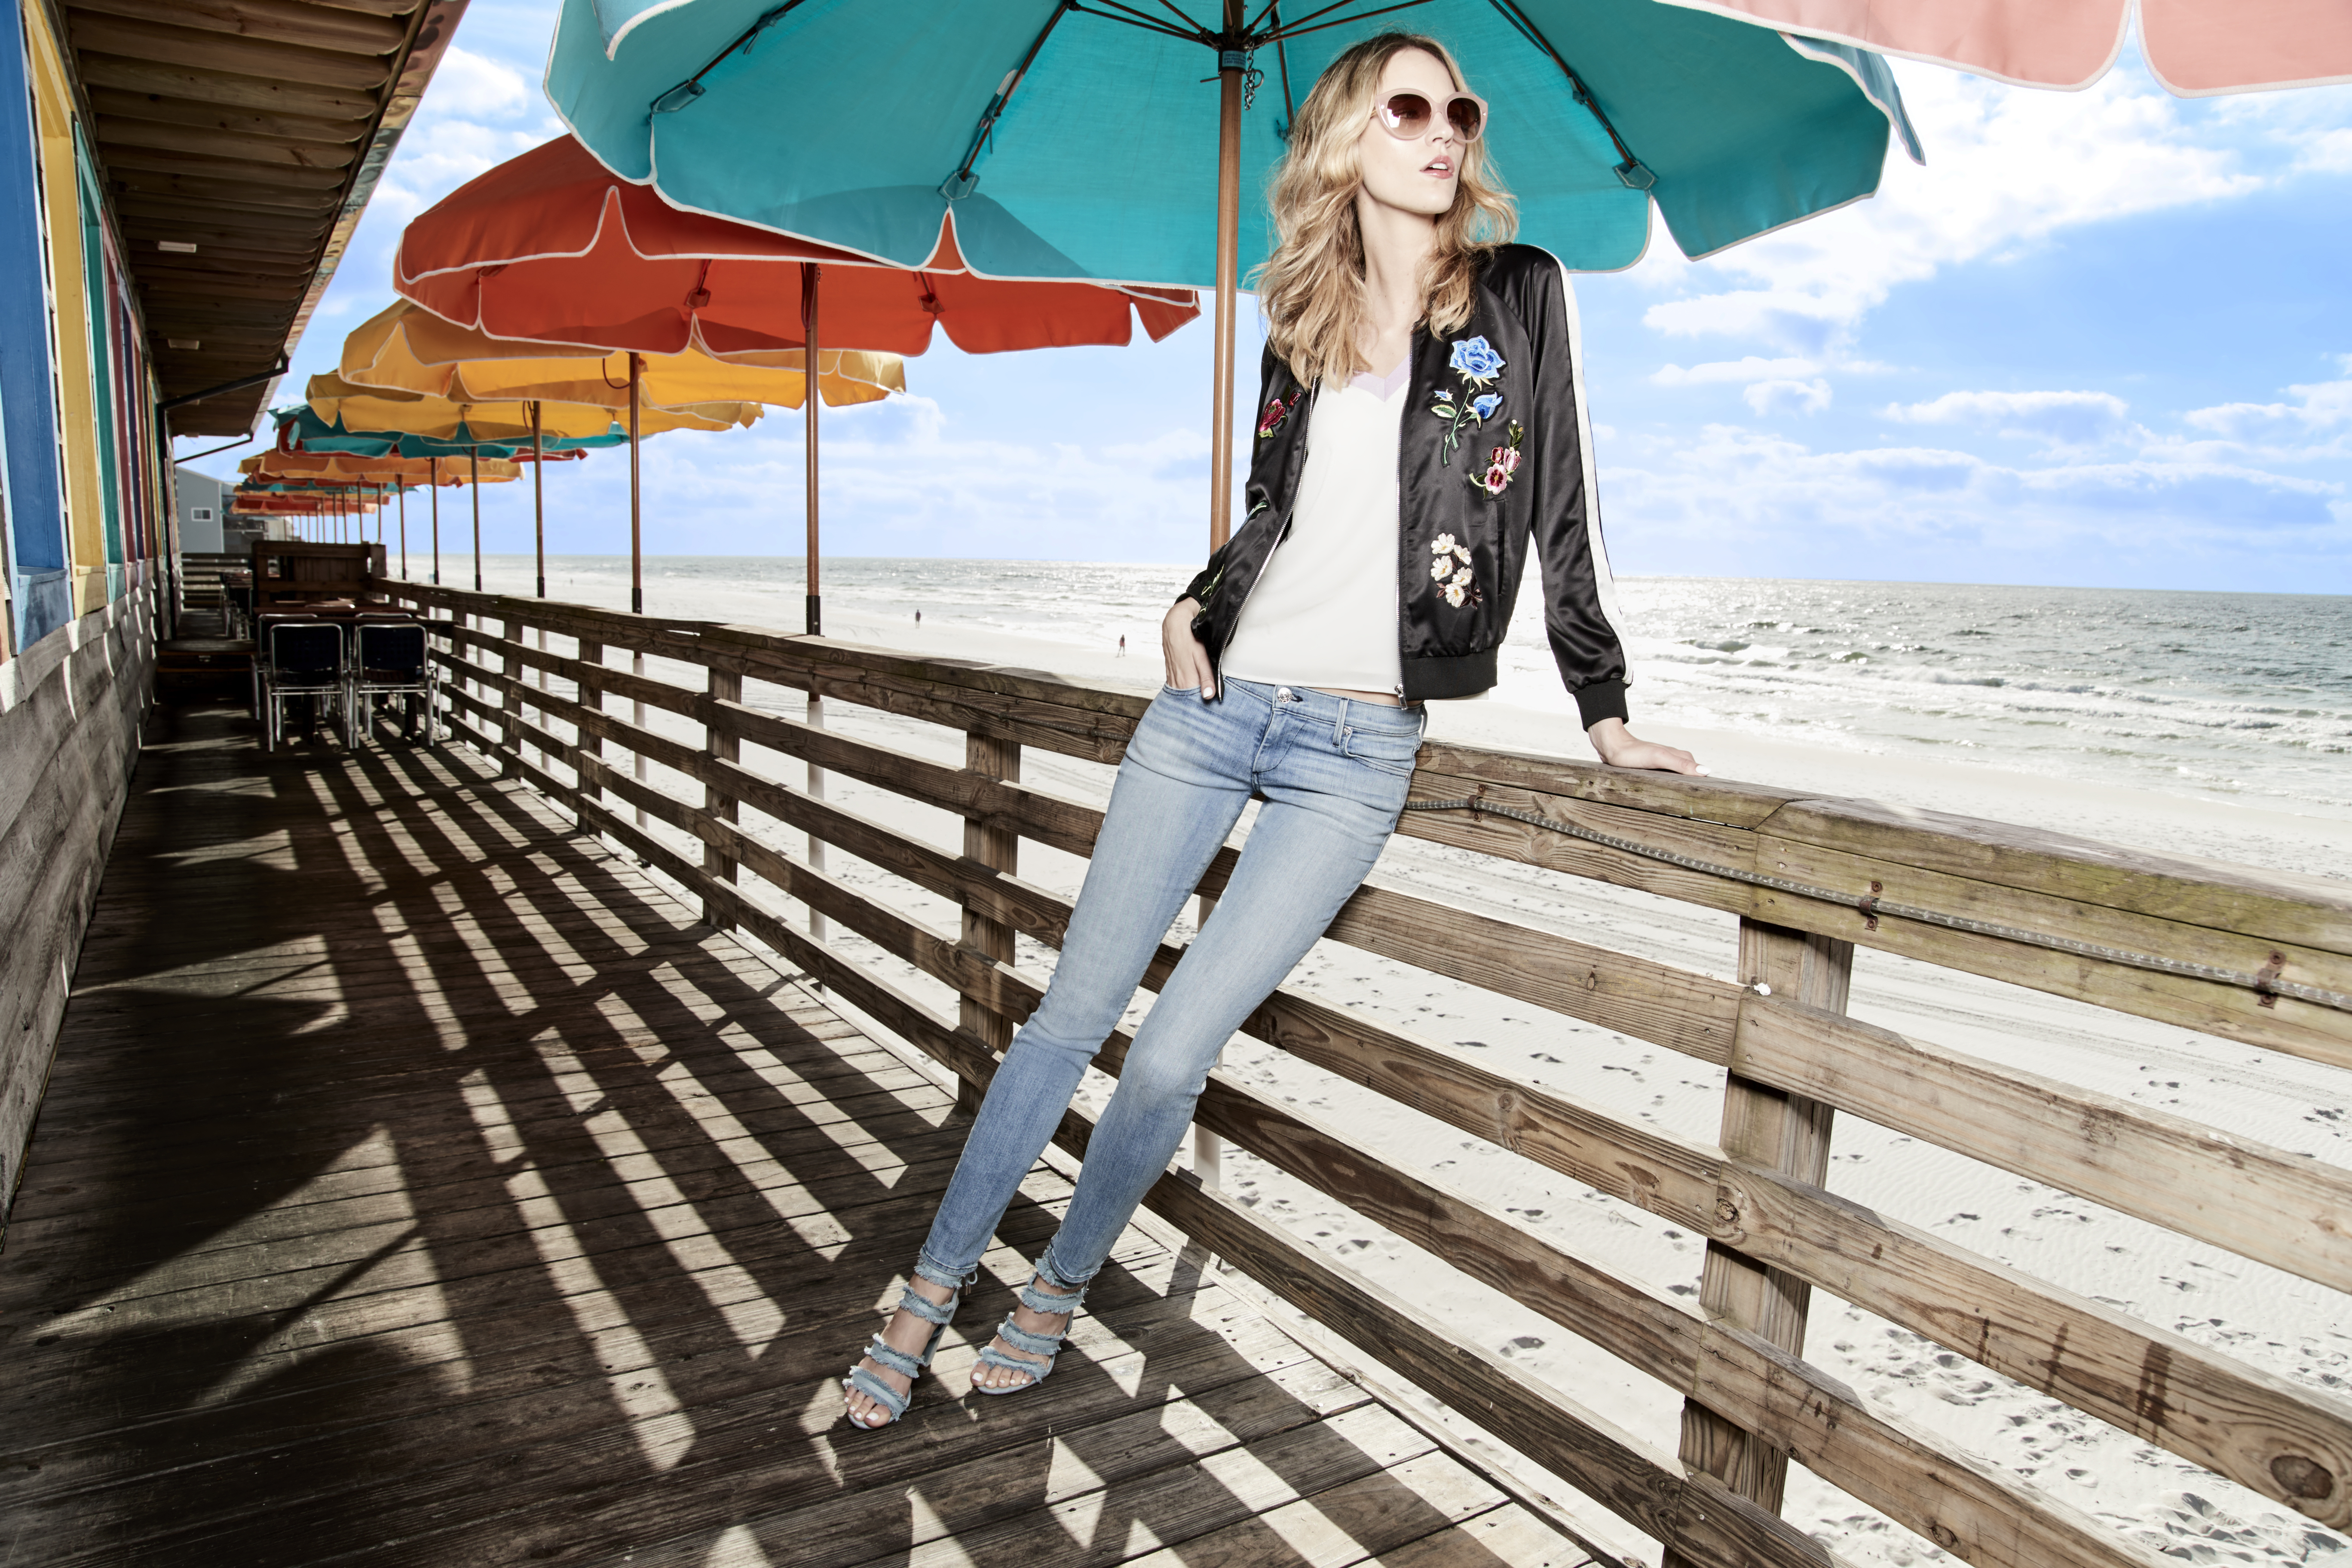 CR by Cynthia Rowley is a cheerful limited-time summer collection, available exclusively at select Macy's locations and on macys.com. Embroidered bomber jacket, $149; color blocked t-shirt, $79. (Photo: Business Wire)